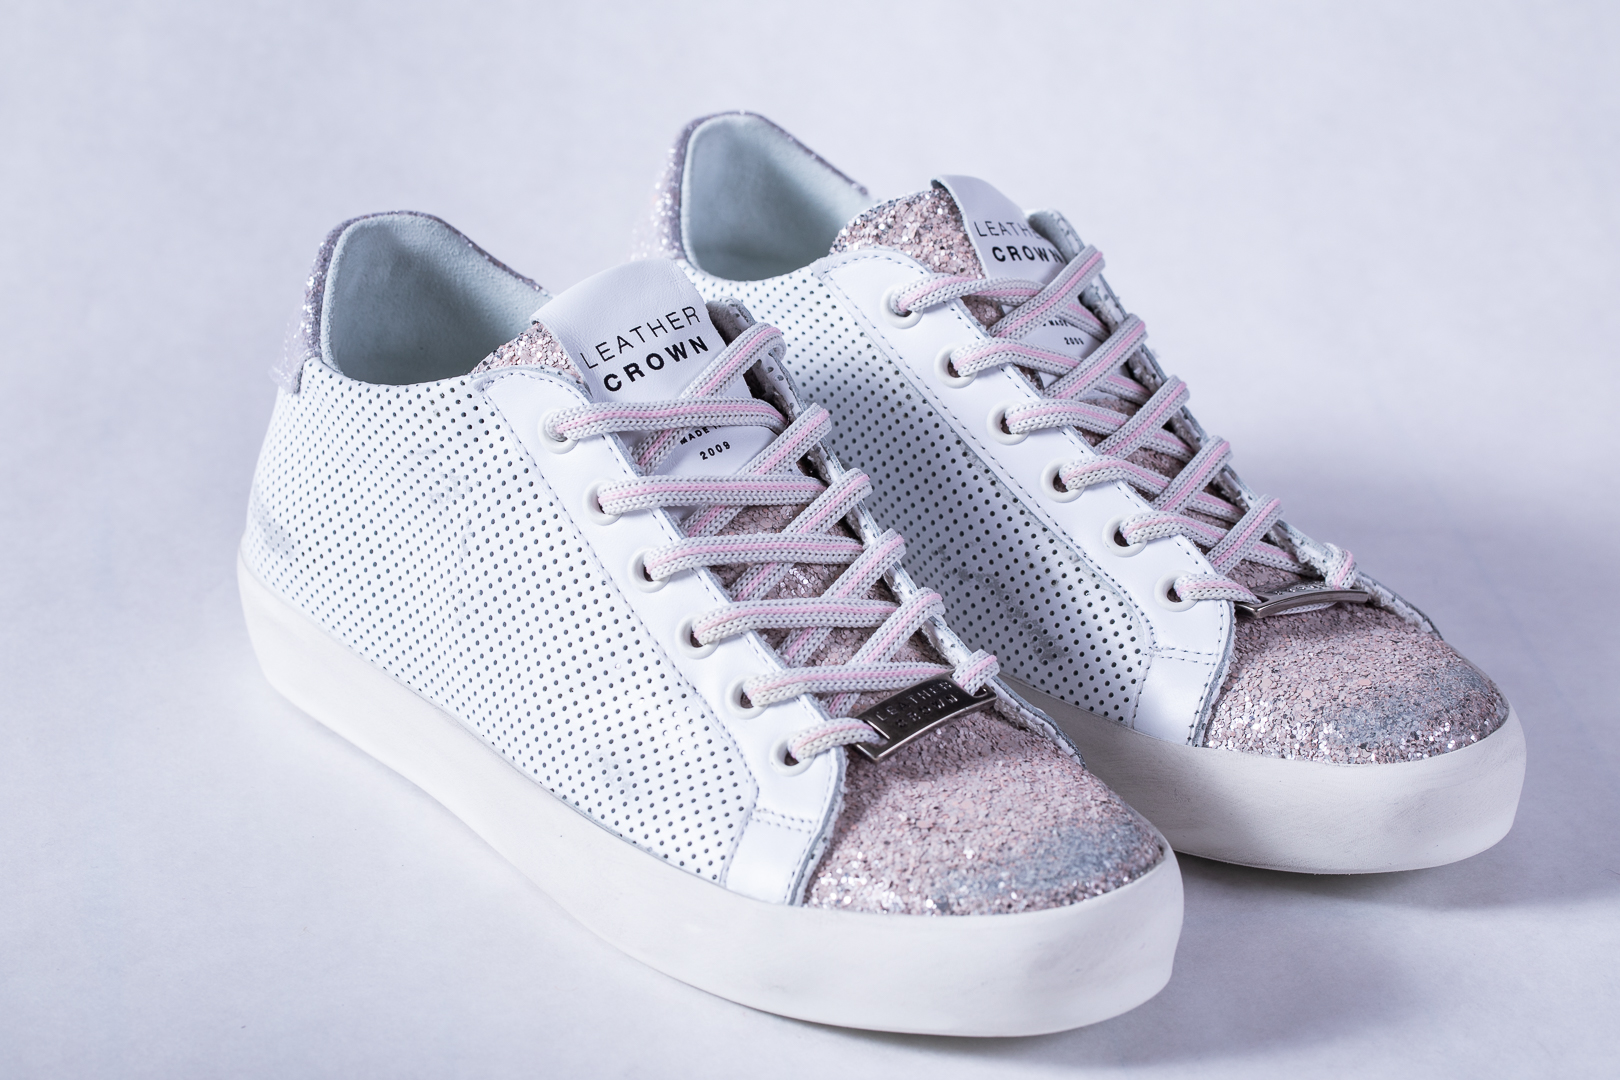 d58fbb4f6c9d Leather Crown Perforated Leather & Rose Glitter Low Top Sneaker ...